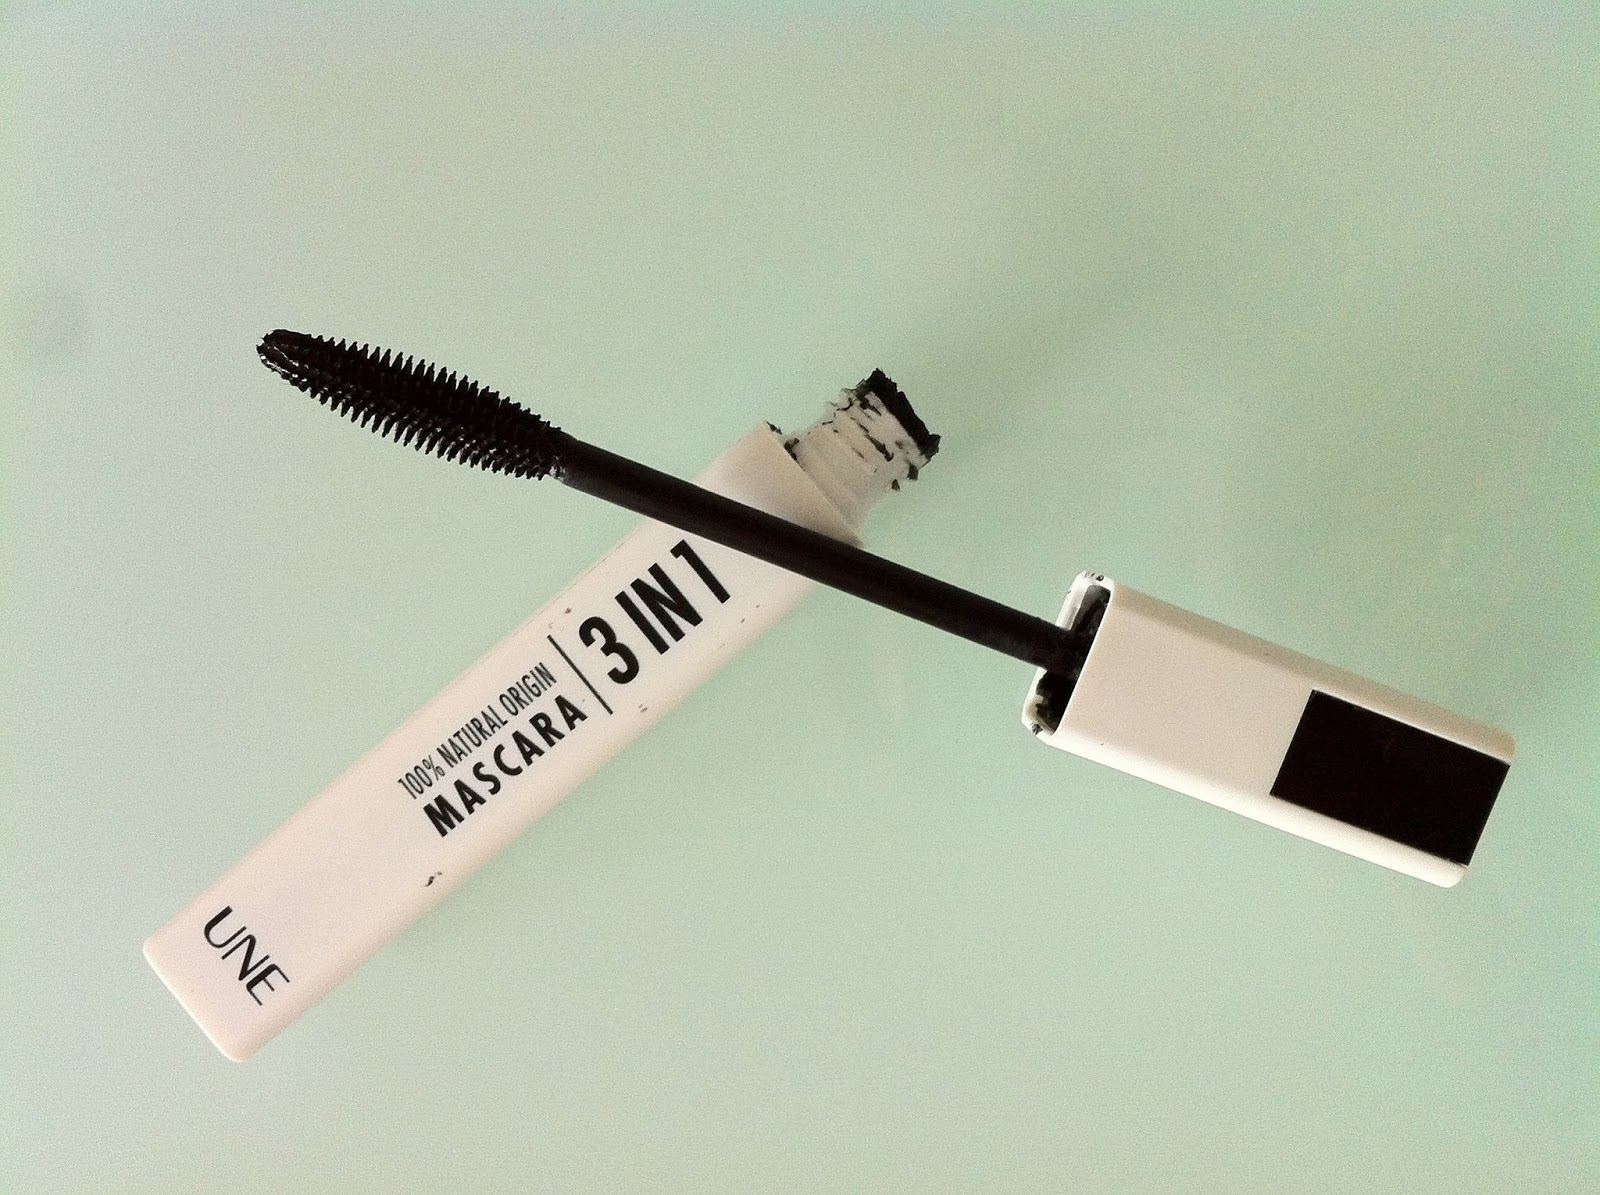 MASCARA 3 EN 1 DE UNE NATURAL BEAUTY : UNE TUERIE !